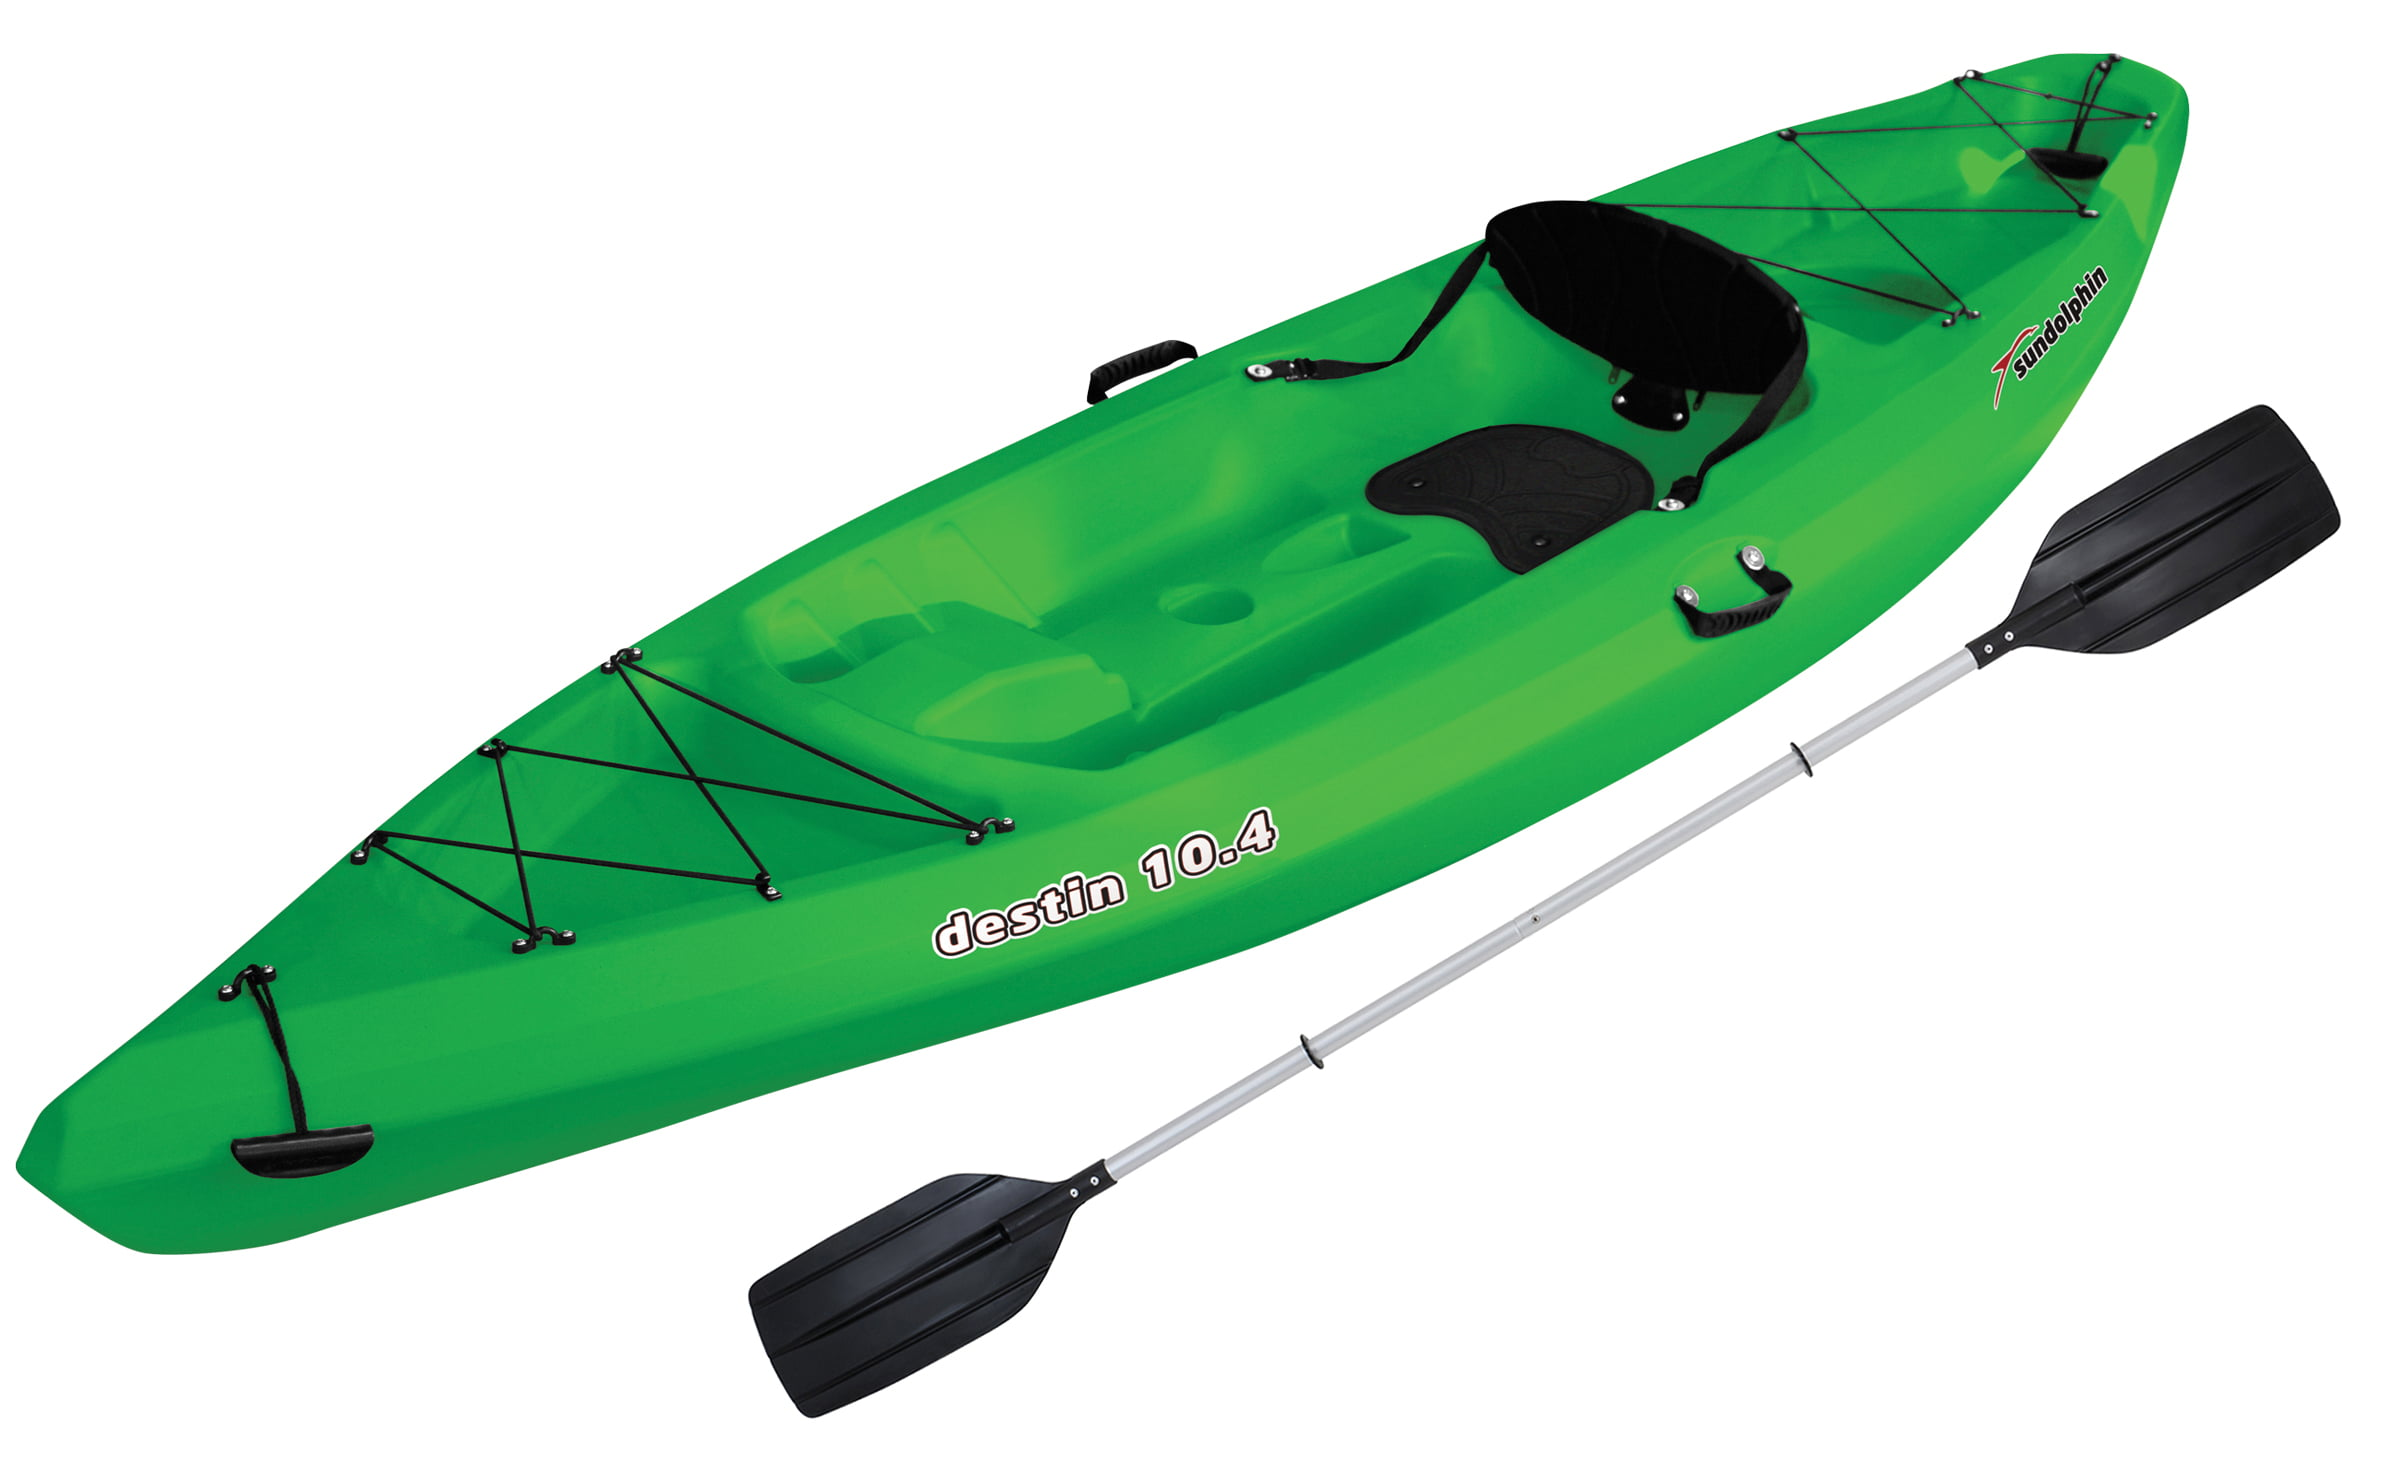 Click here to buy Sun Dolphin Destin 10.4 Sit-On Recreational Kayak, Paddle Included by KL Outdoor.